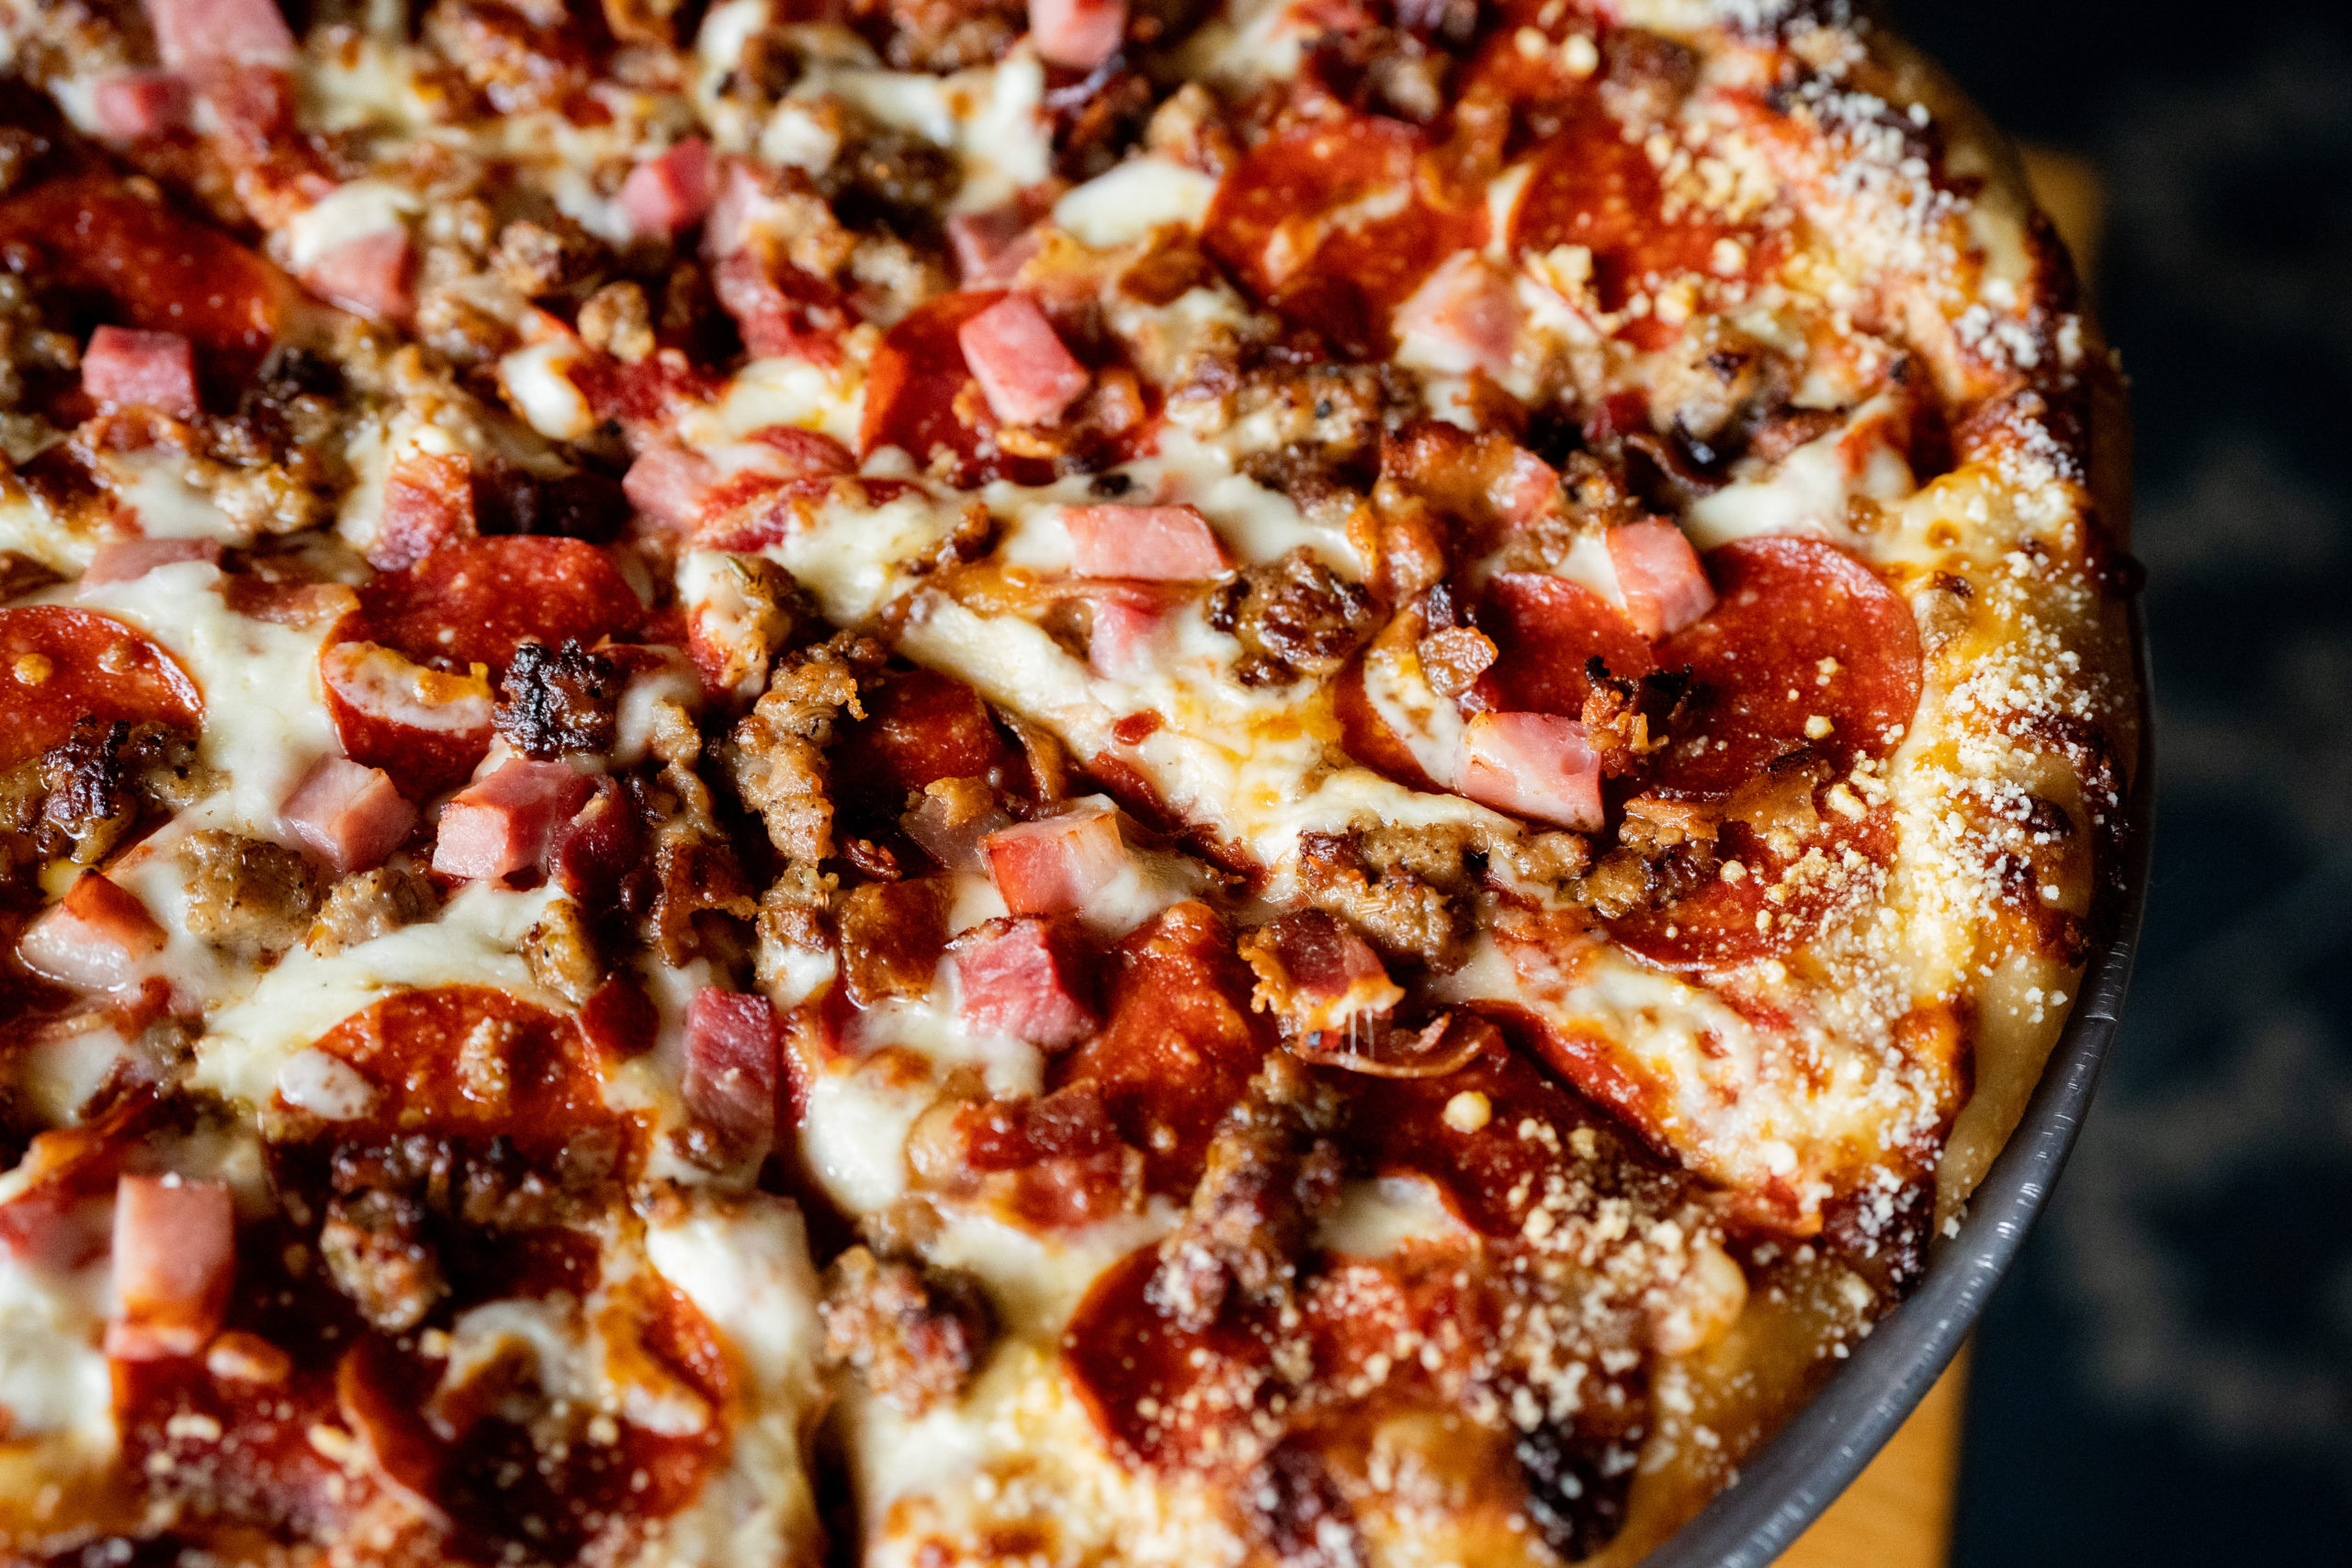 A freshly baked meat lover's pizza with pepperoni, sausage, and ham at Treetops Resort.